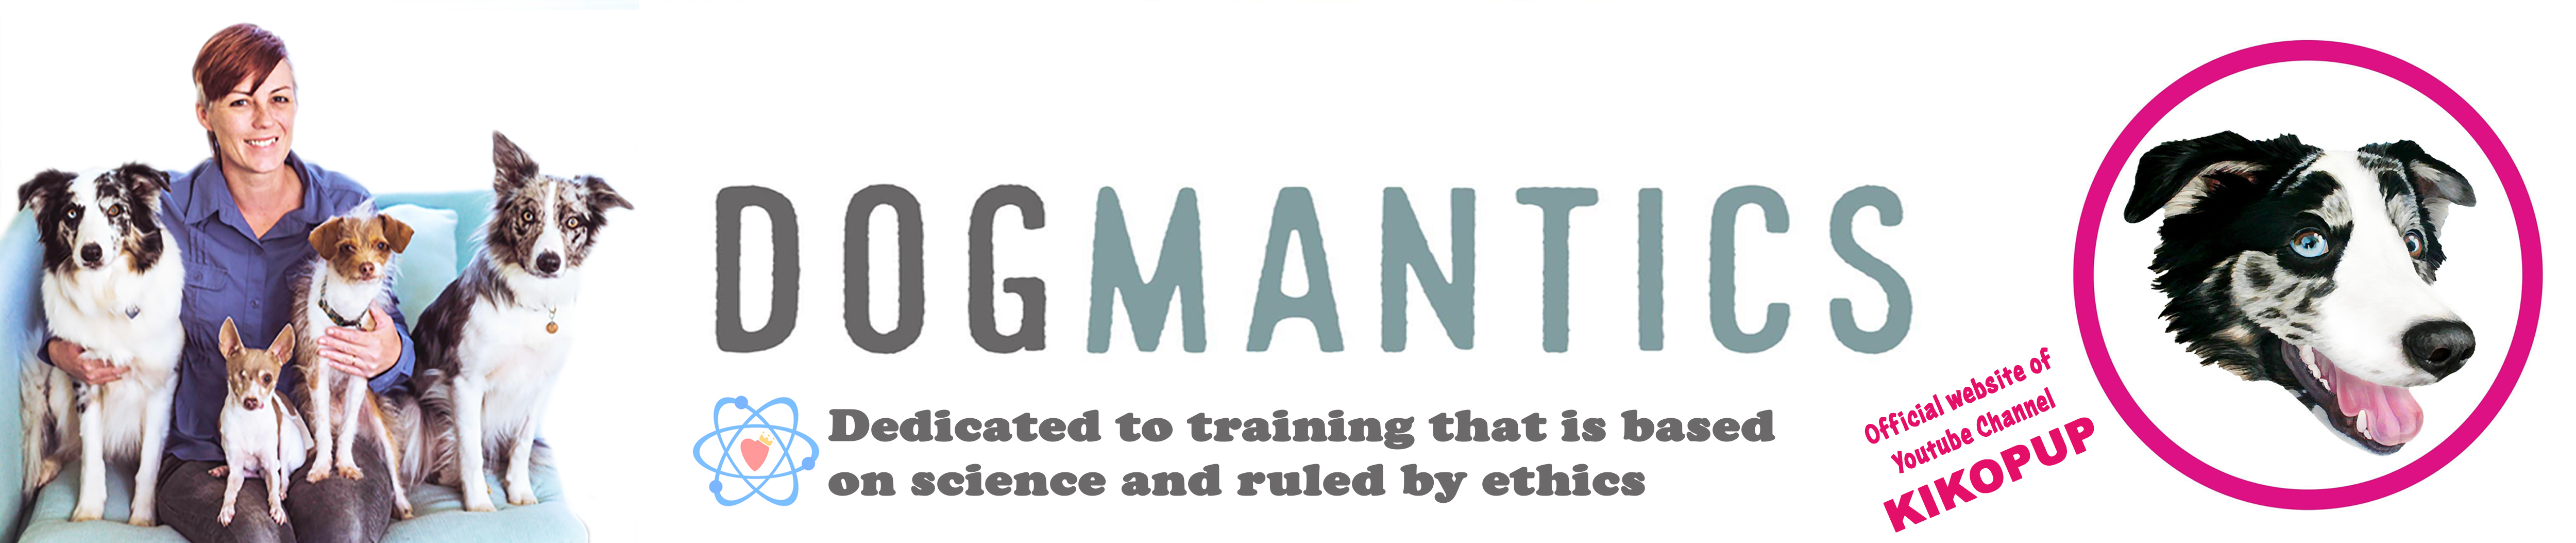 Dogmantics Dog Training